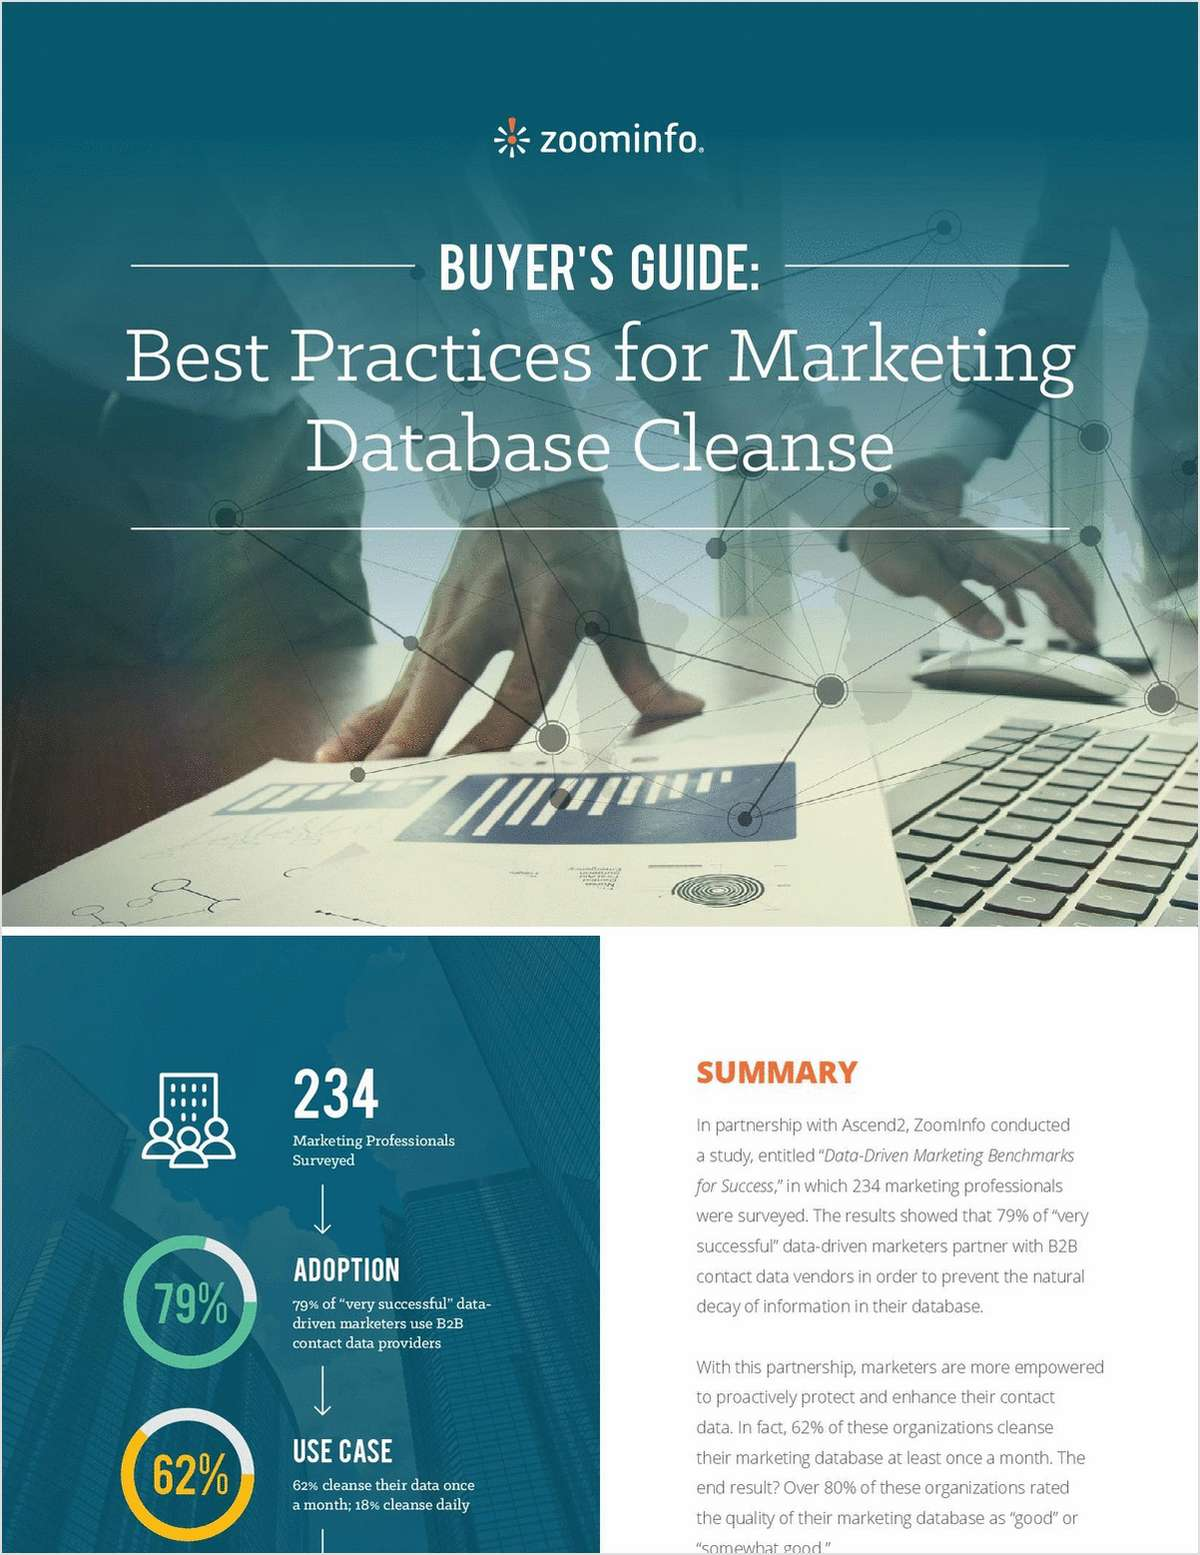 Best Practices for a Marketing Database Cleanse